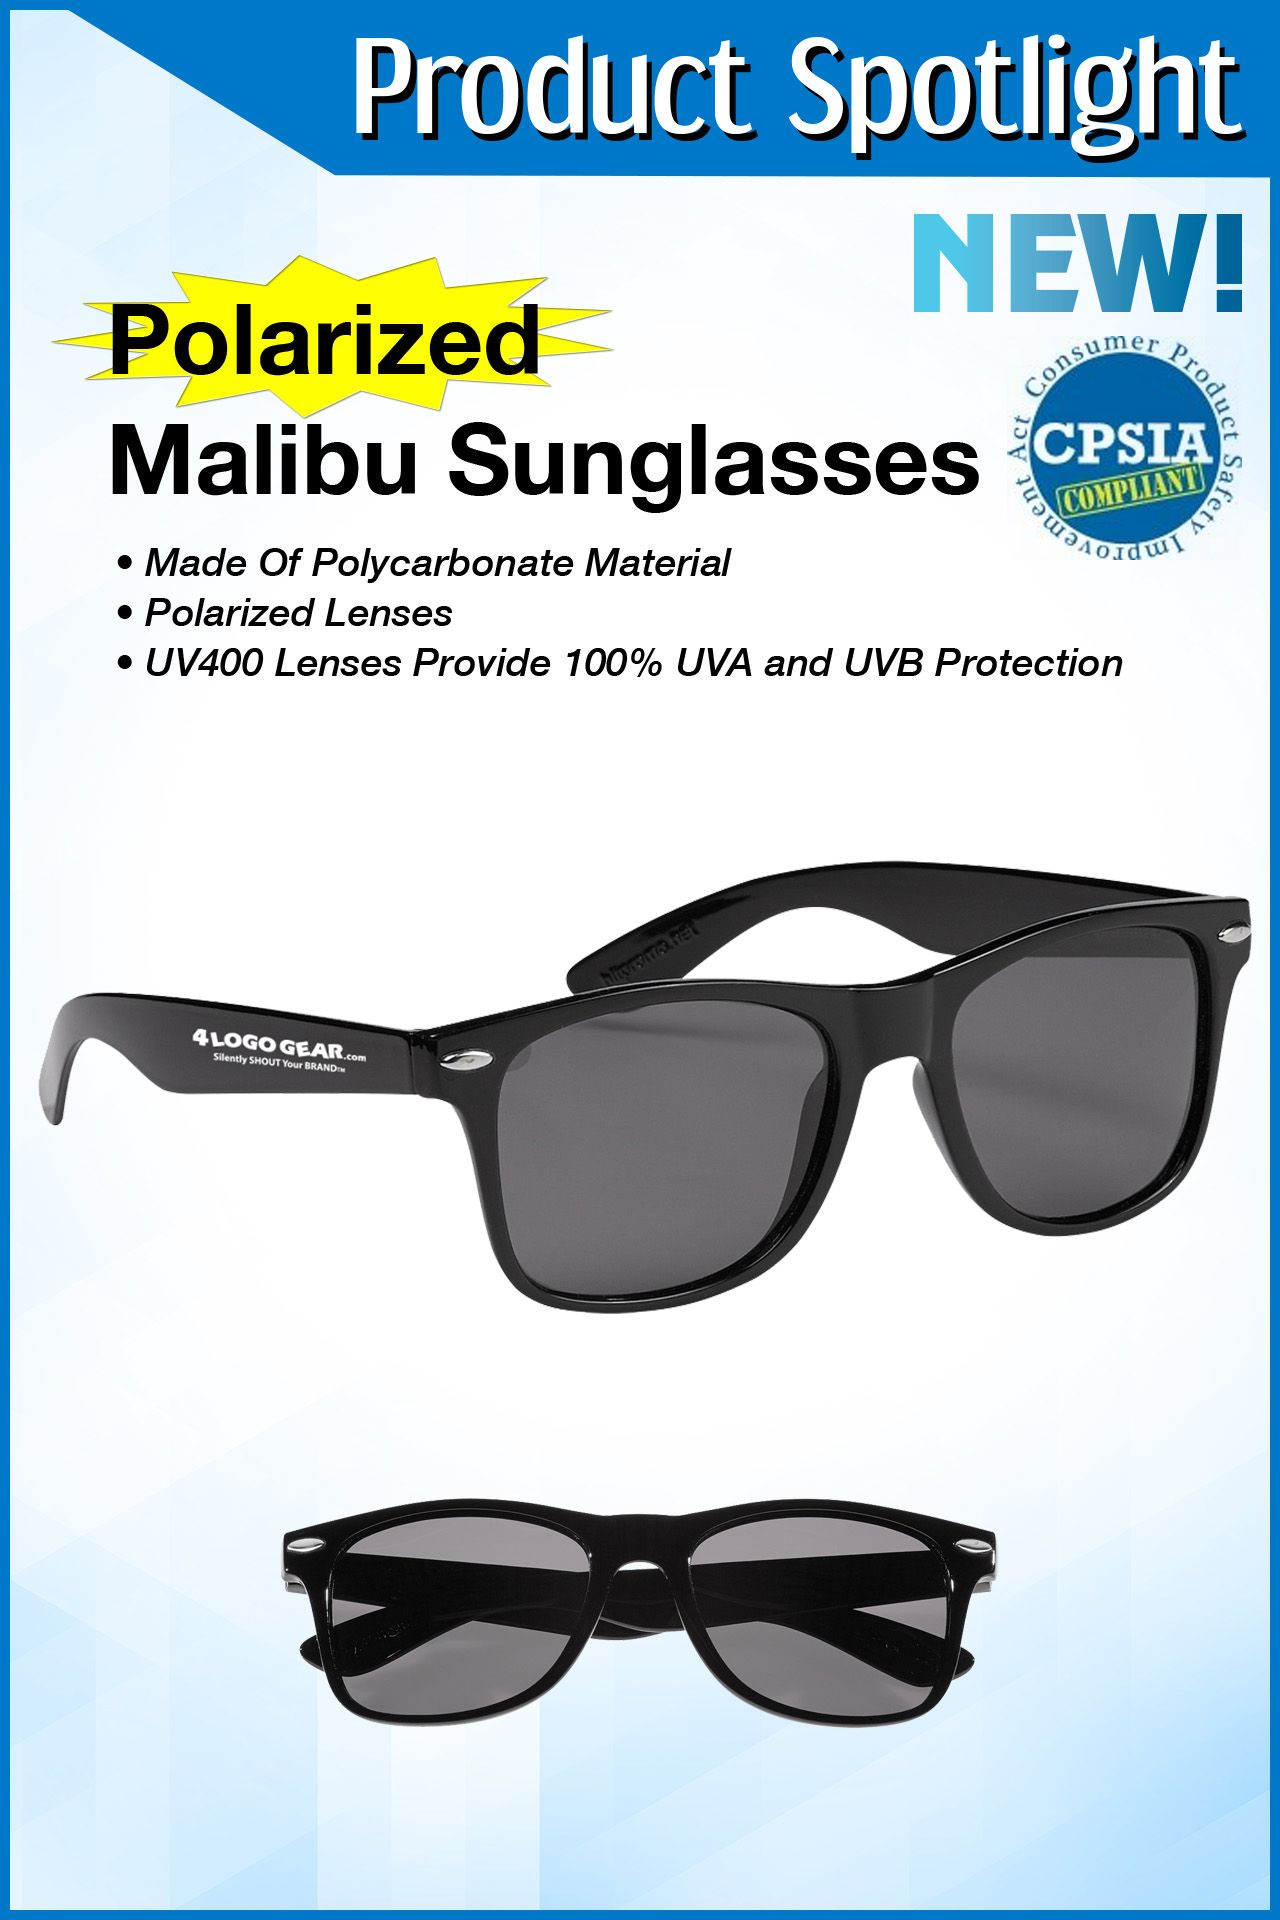 0a75441bc40 Let your eyes rest with these Polarized Sunglasses  promotionalproducts   polarized  sunglasses